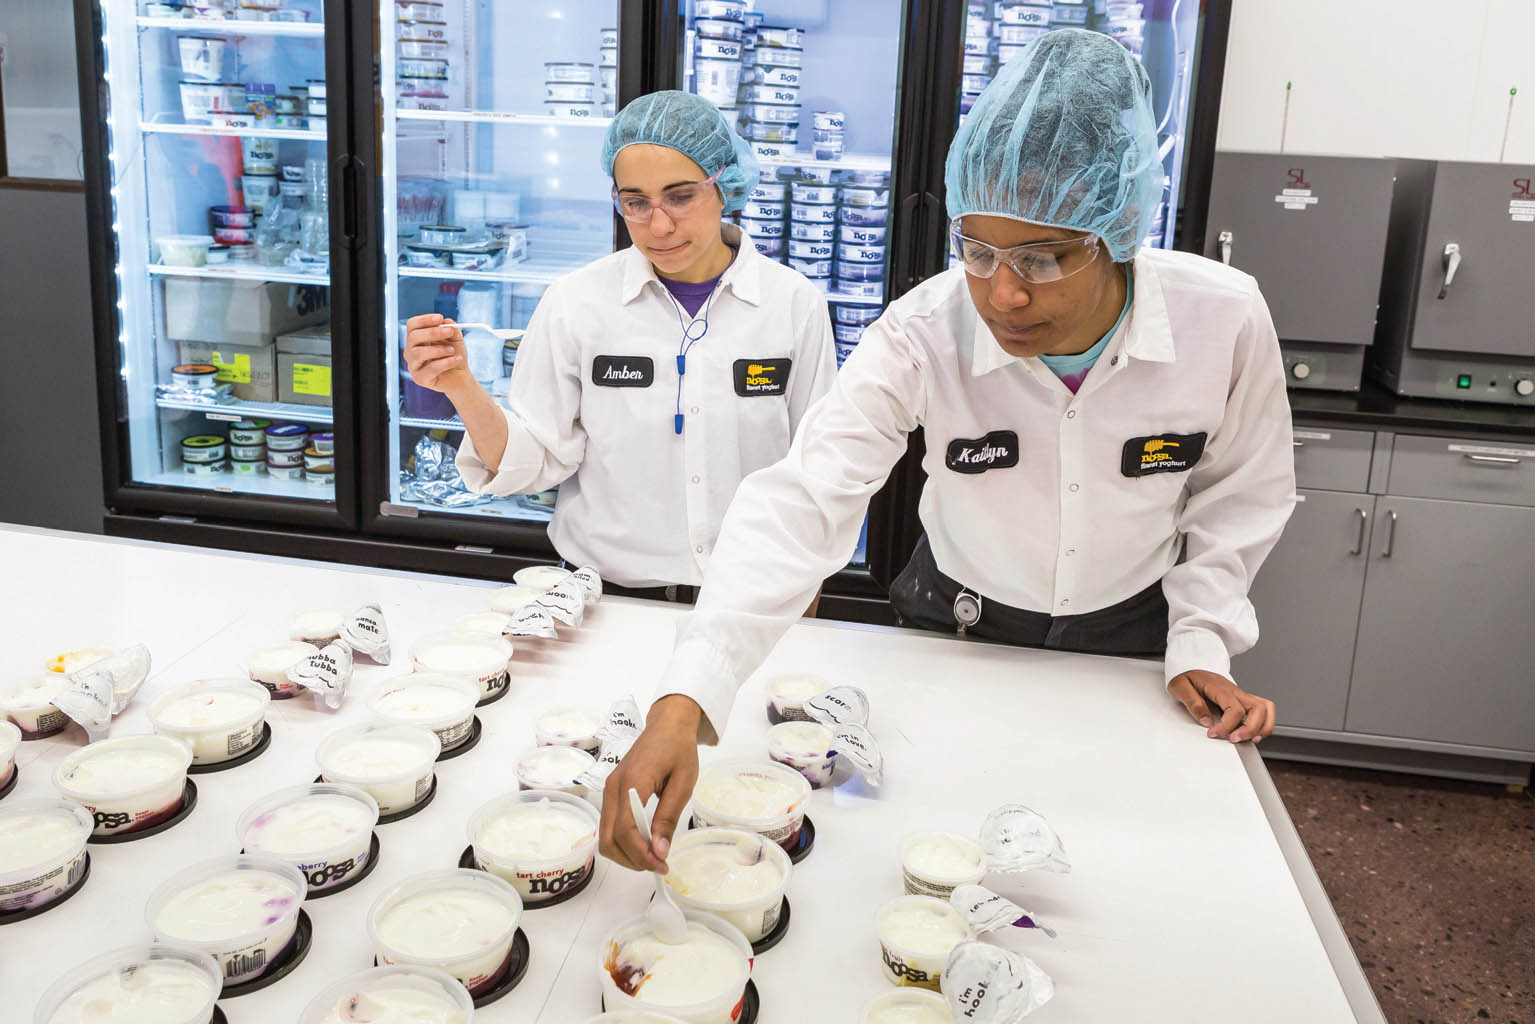 Lab technicians perform sensory evaluations of yogurts pulled from the production line.